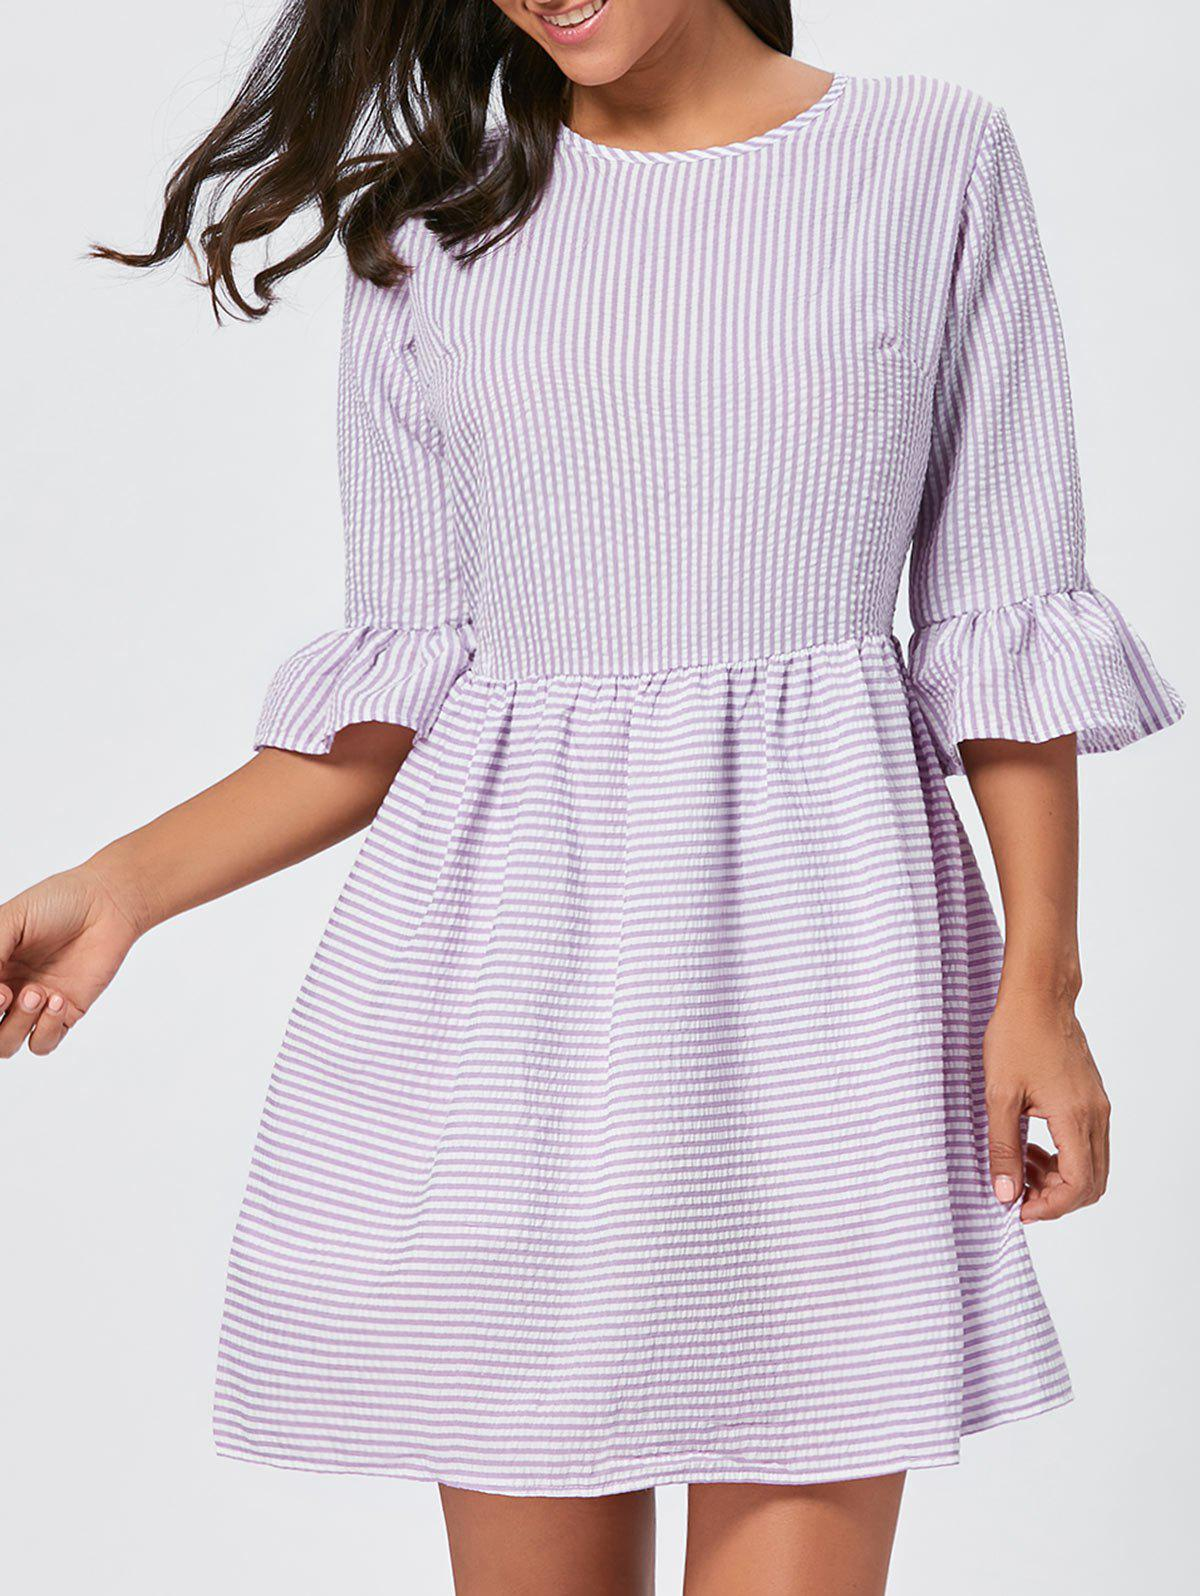 Flounce Sleeve Seersucker Striped Dress - PURPLE XL